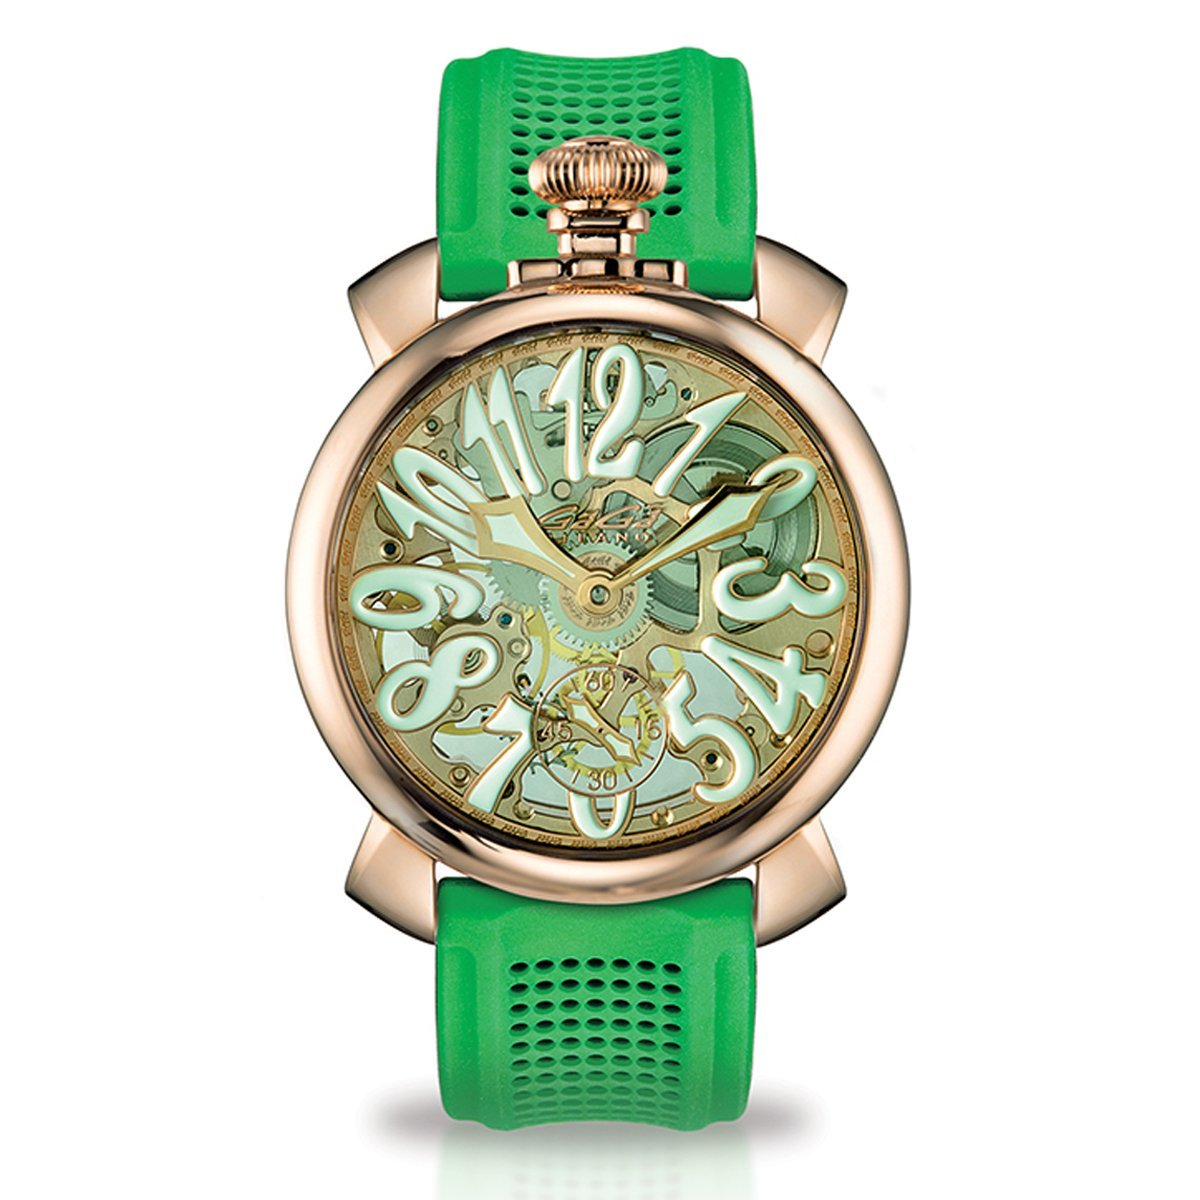 GaGà Milano Skeleton 48MM Rose Gold Green - Watches & Crystals